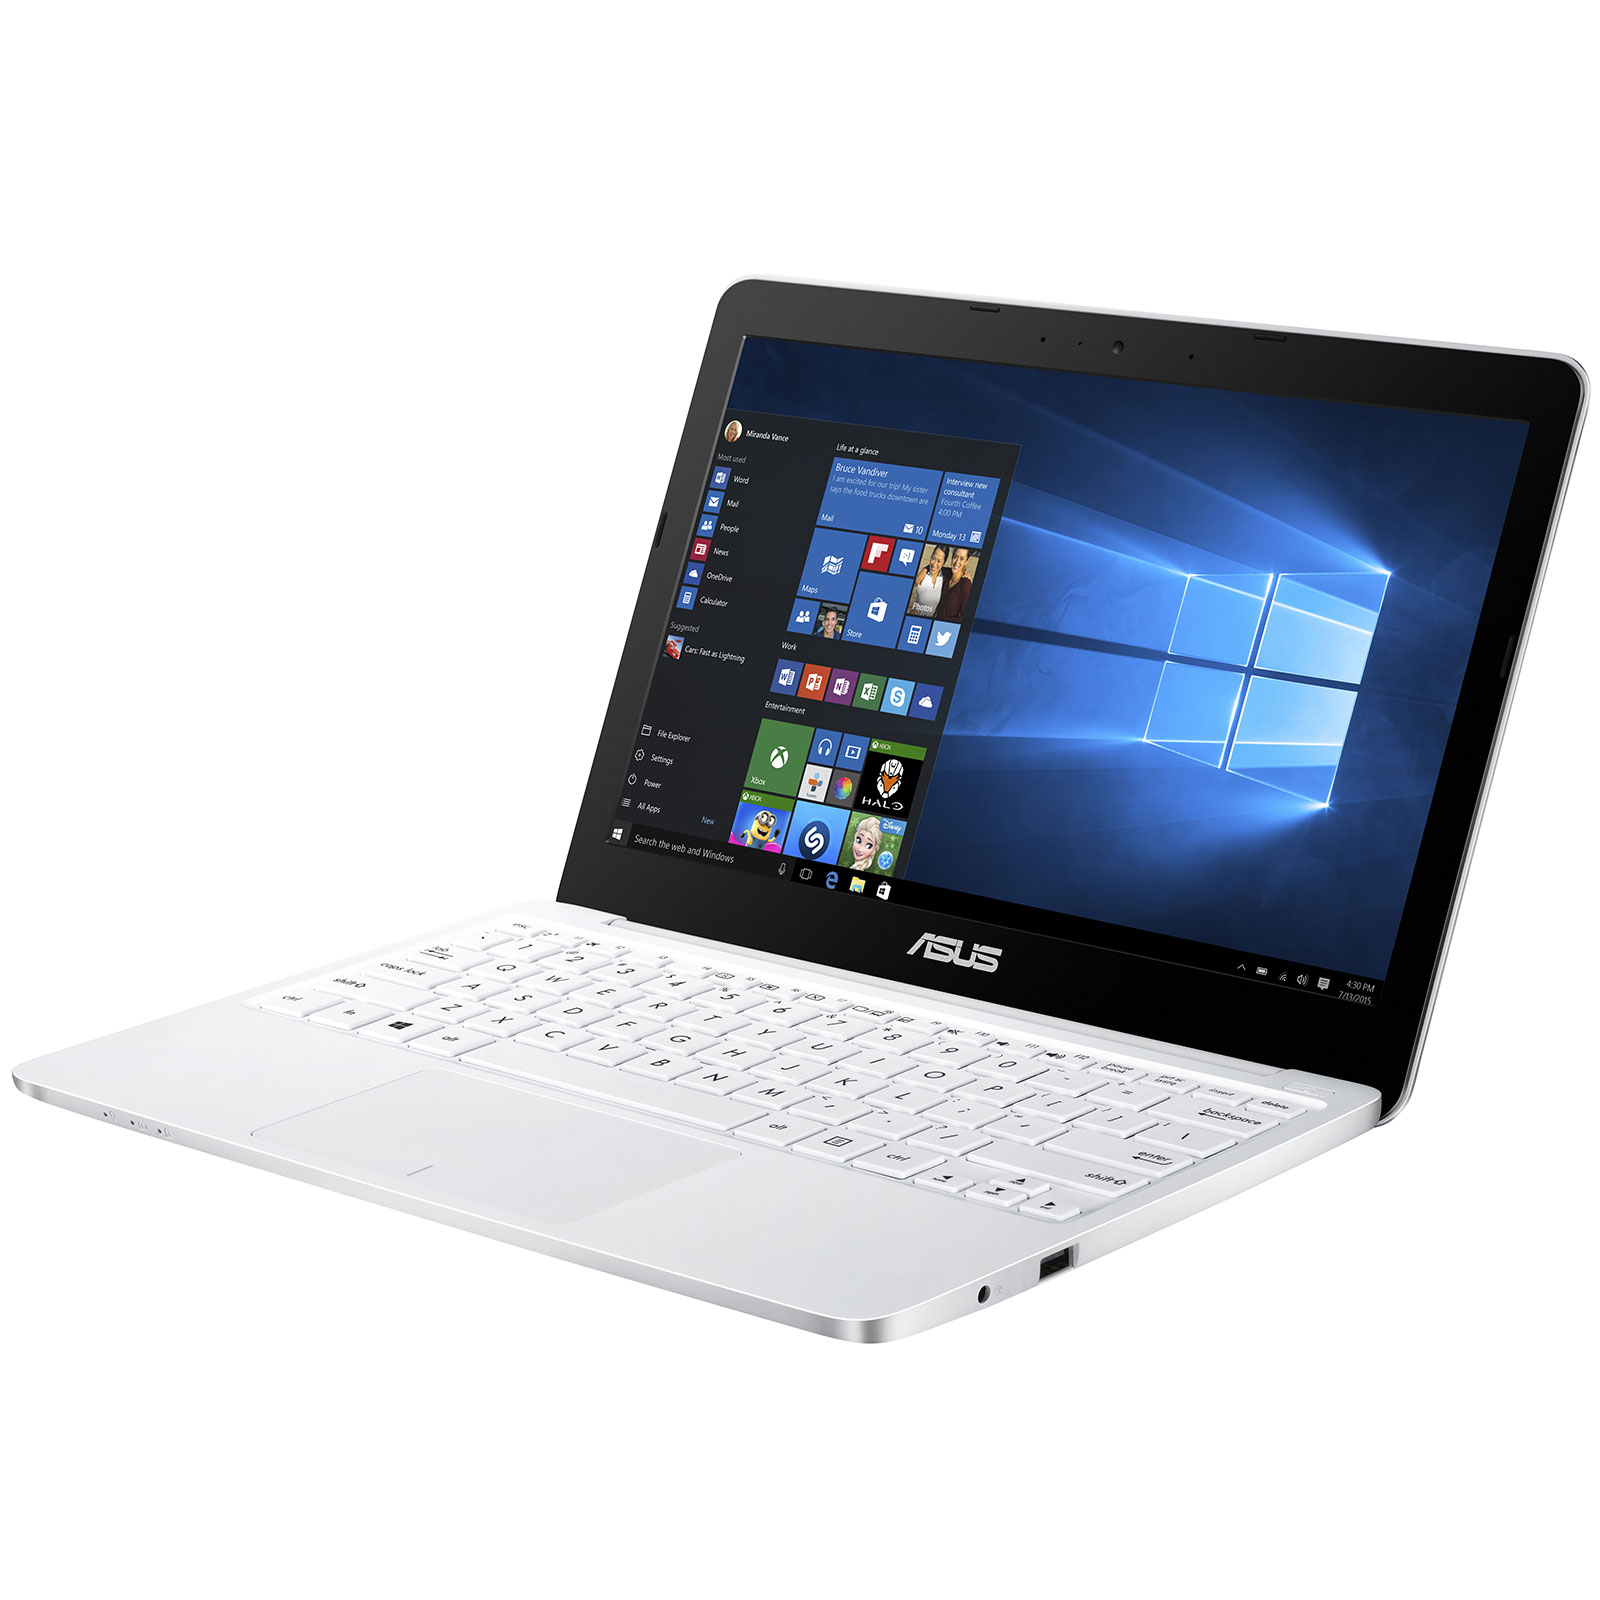 asus eeebook x206ha fd0088t blanc pc portable asus sur. Black Bedroom Furniture Sets. Home Design Ideas